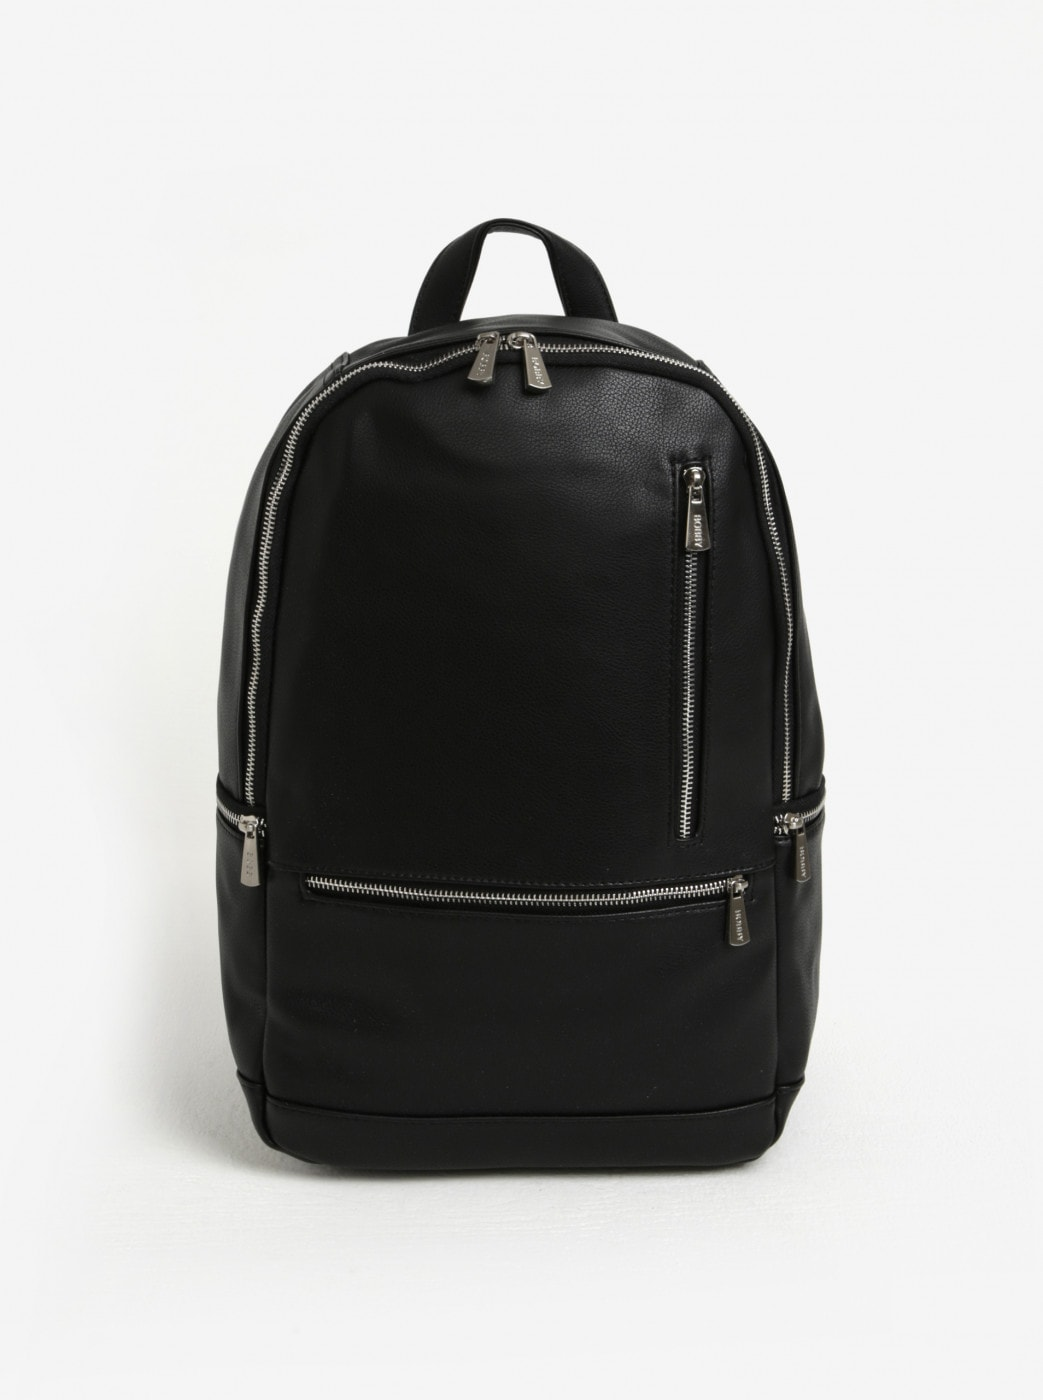 Black backpack with zippers in silver Bobby Black